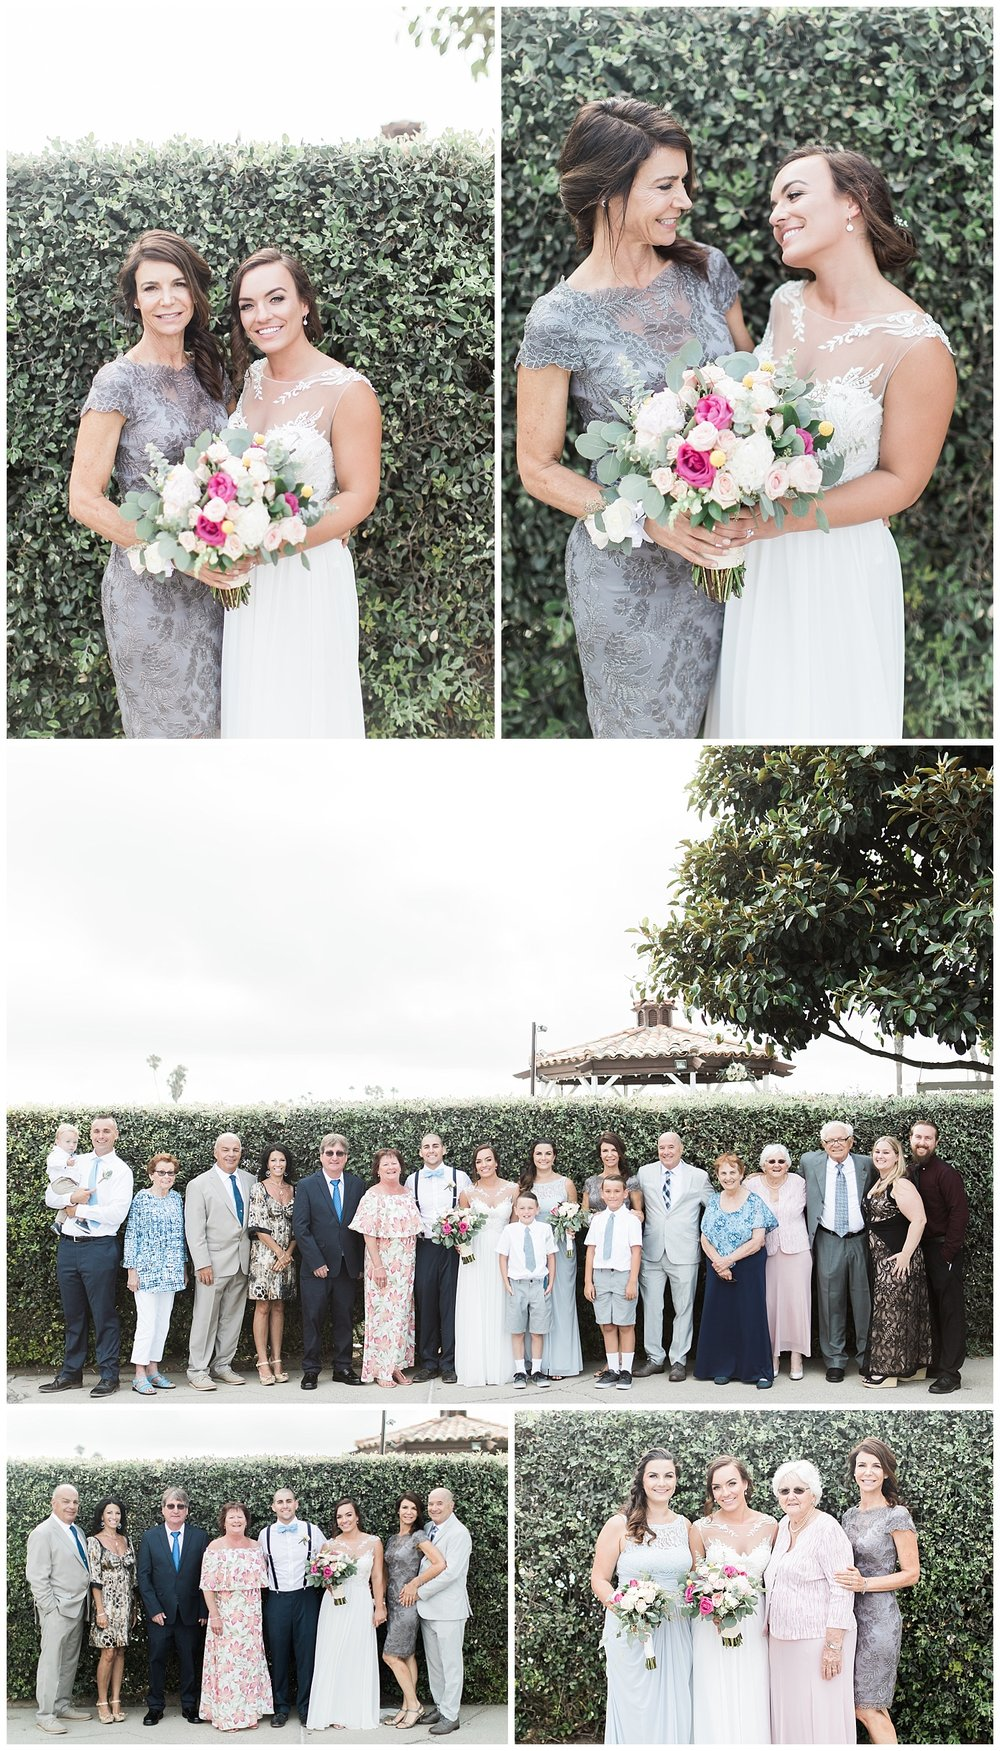 Ashley Burns Photography | Wedding, Branding, and Lifestyle Photography